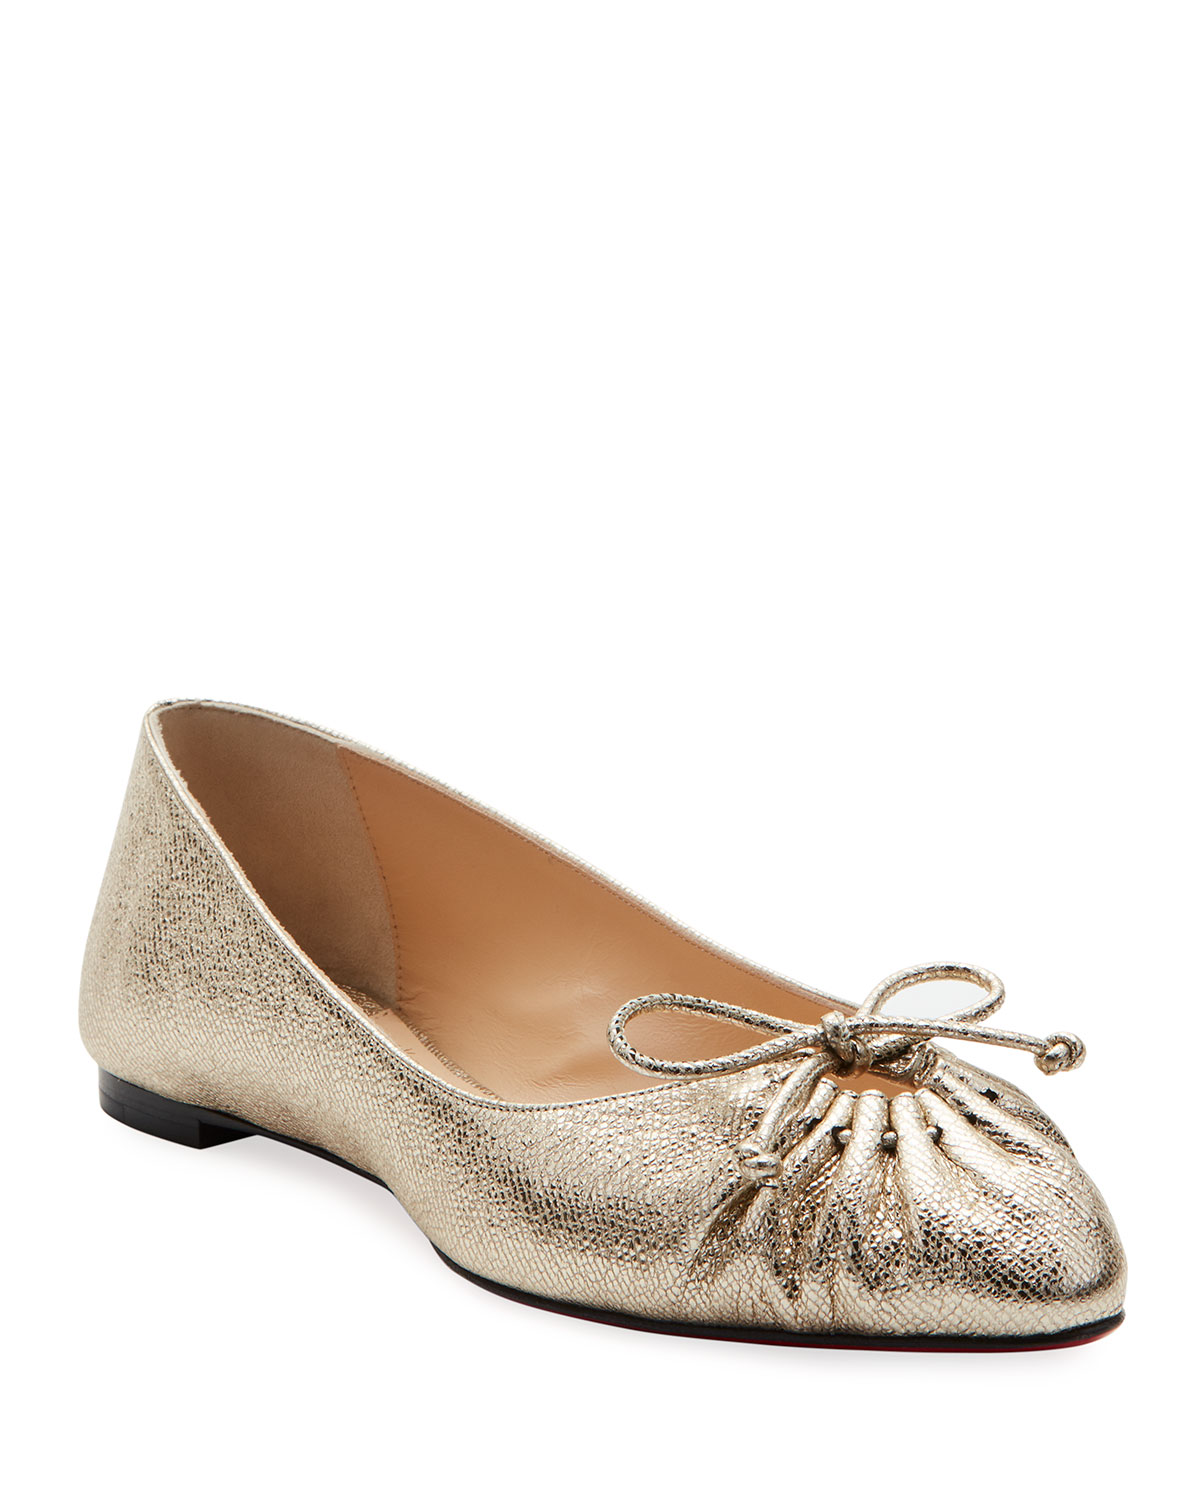 cheap for discount 6415a 13110 Merimee Red Sole Ballet Flats, Gold